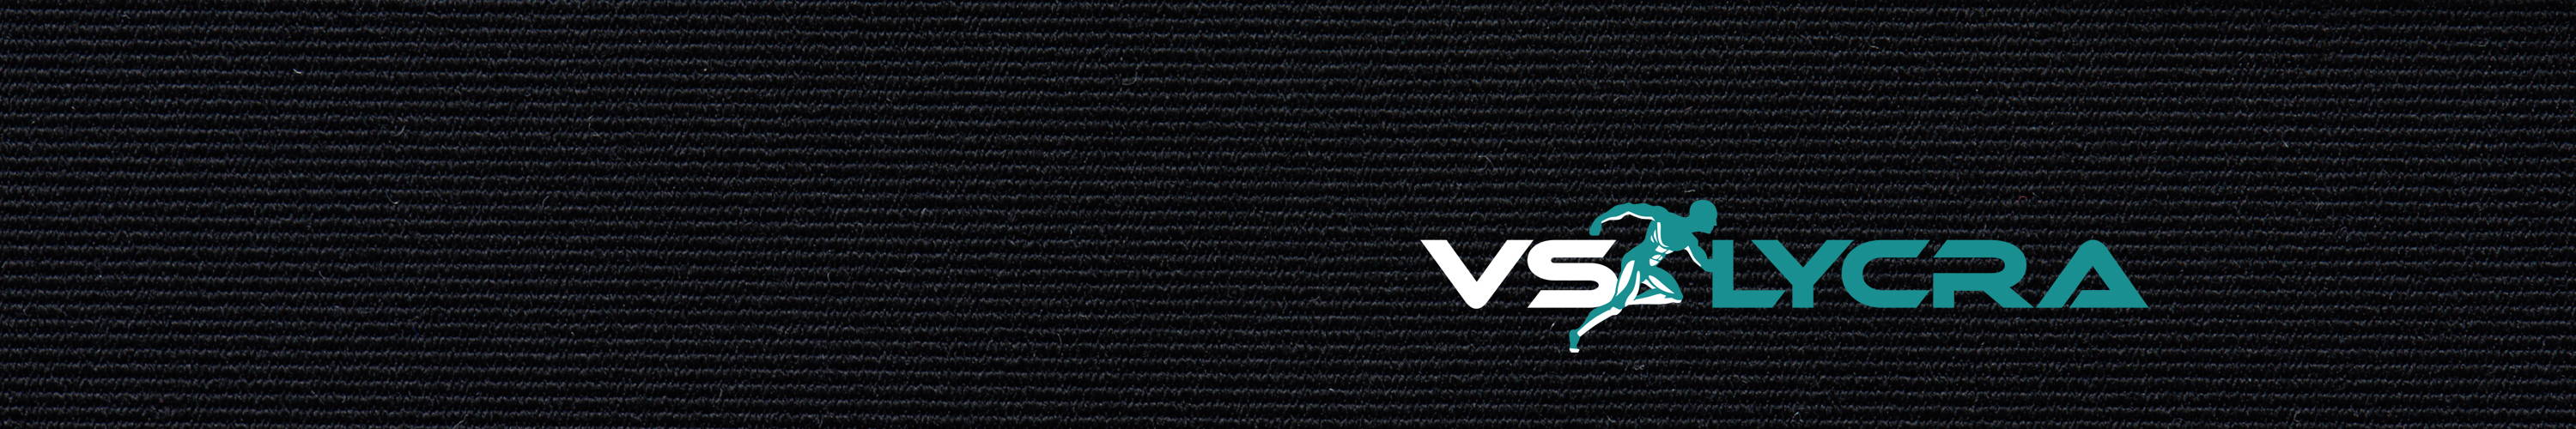 Ideal for tights, tops and stretch paneling in complex garments, VS Lycra is a premium heavyweight all-purpose stretch and recovery sportswear fabric.